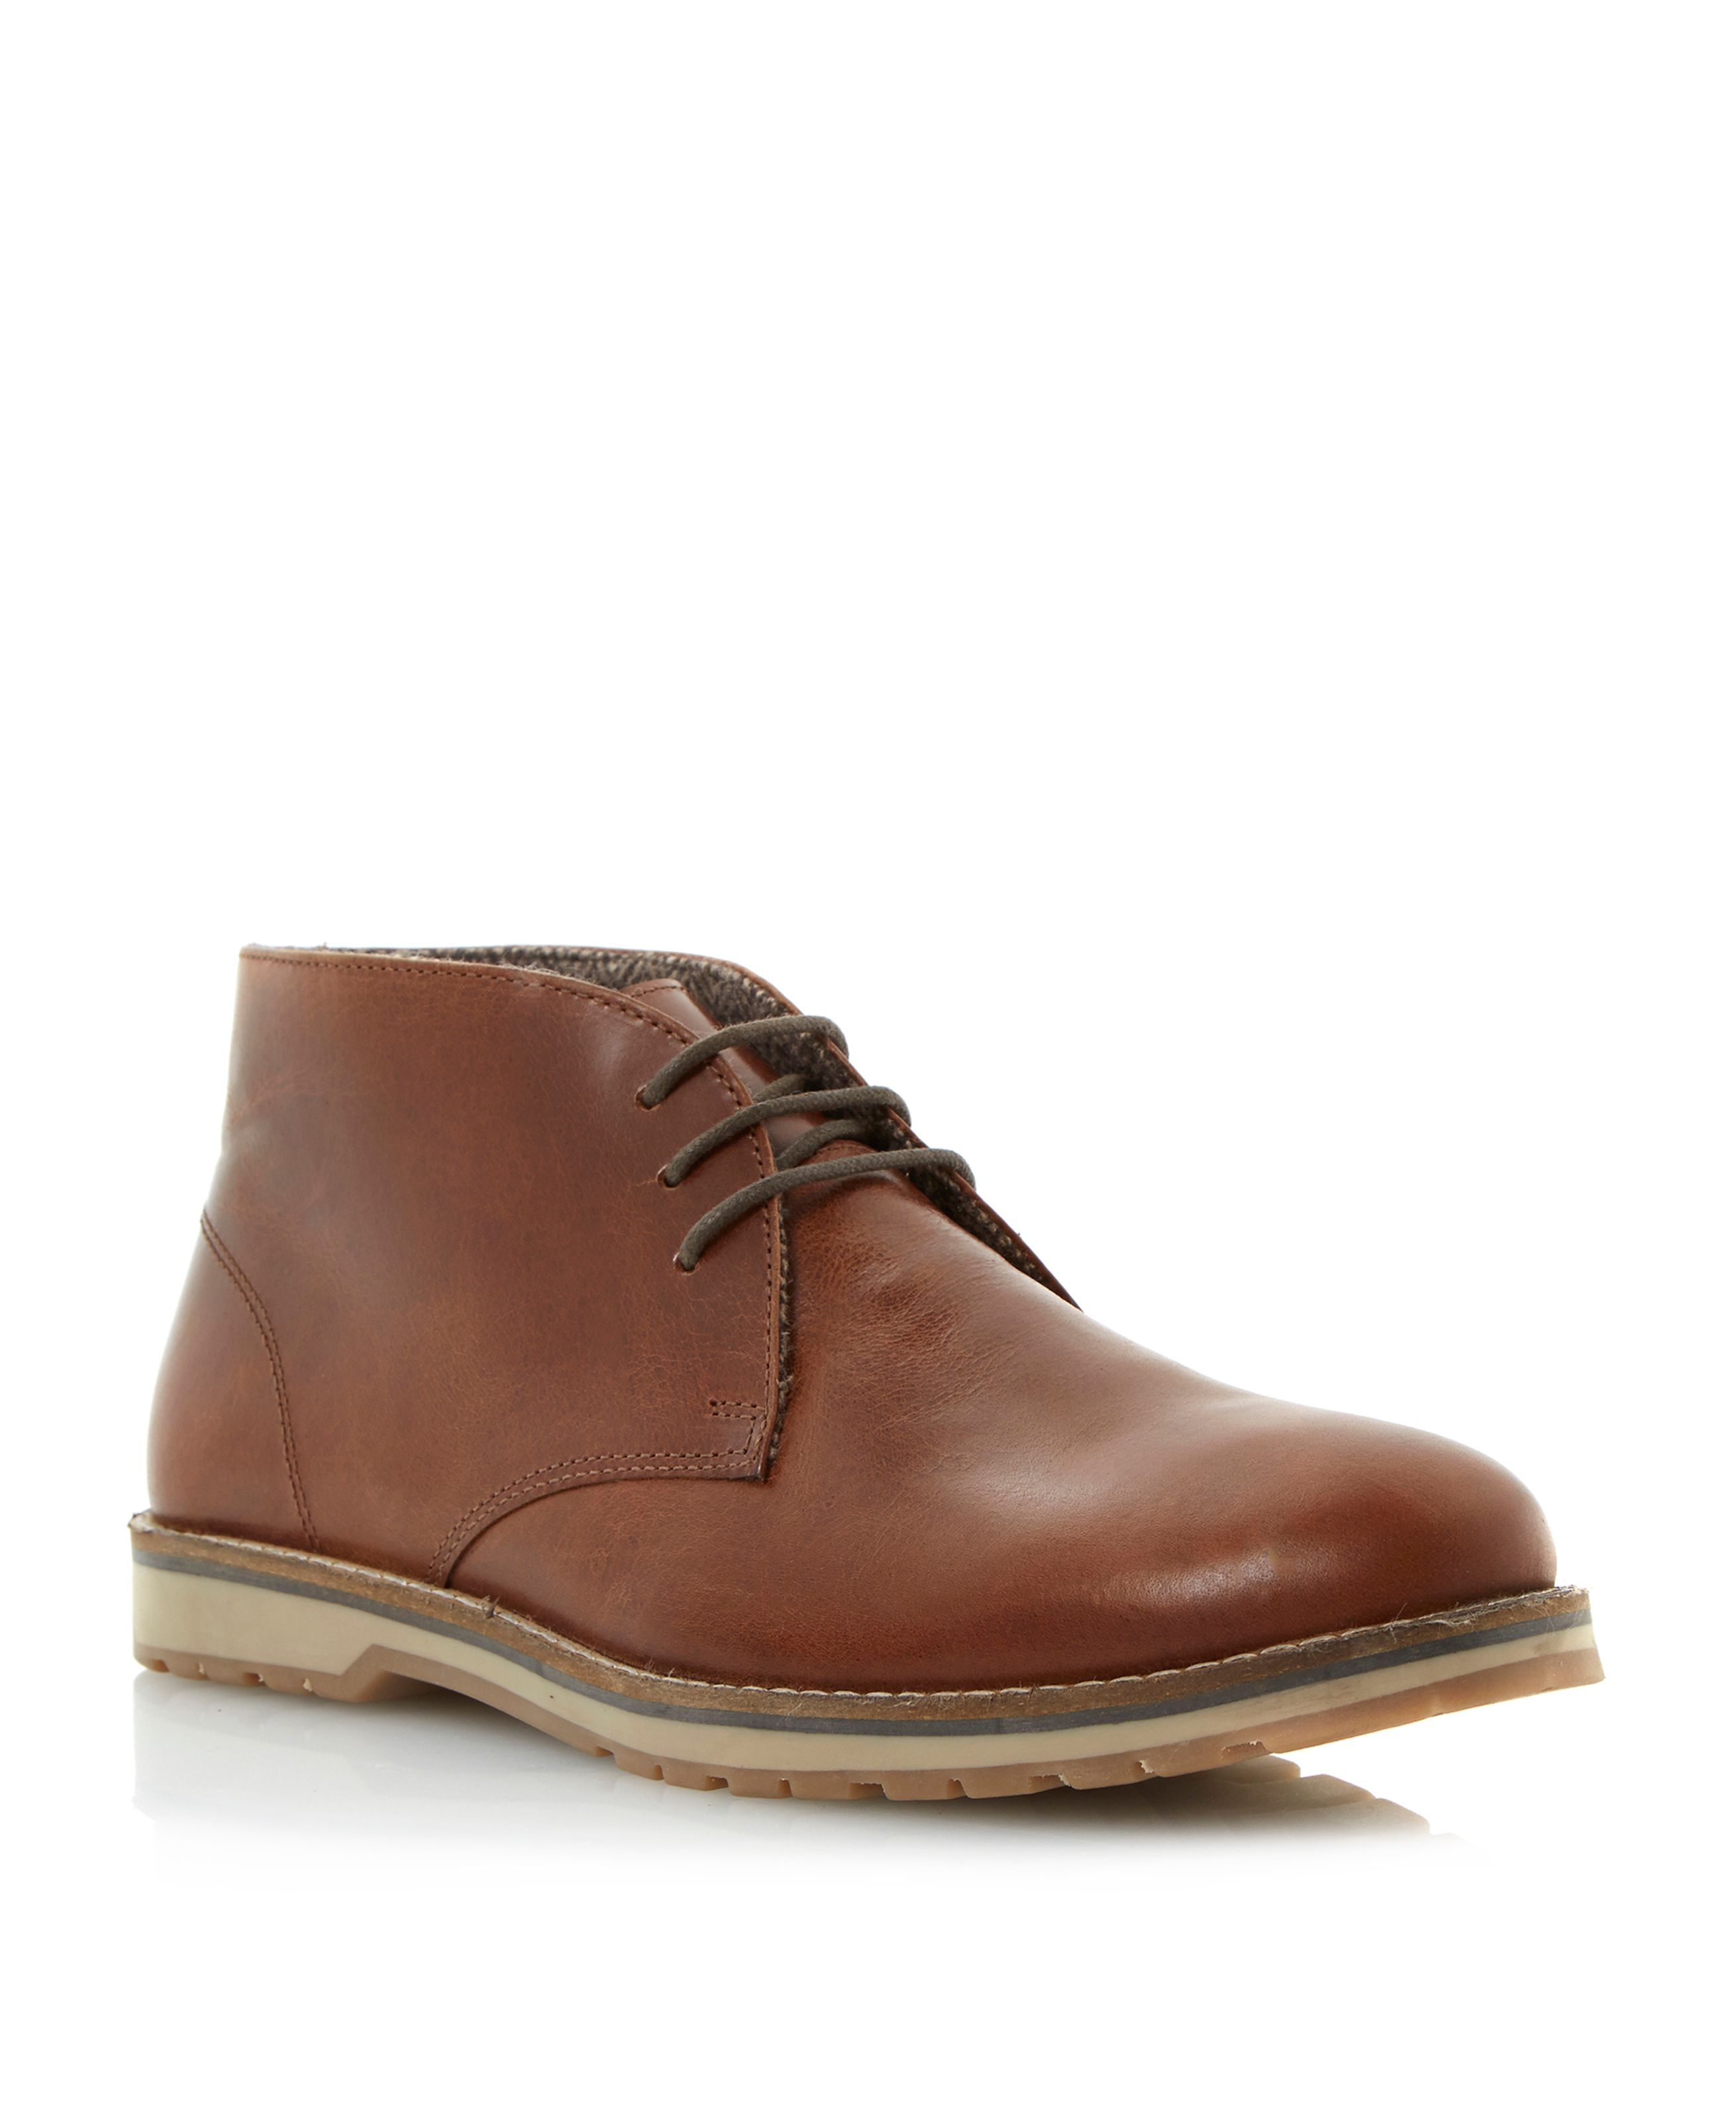 Change low chukka boots